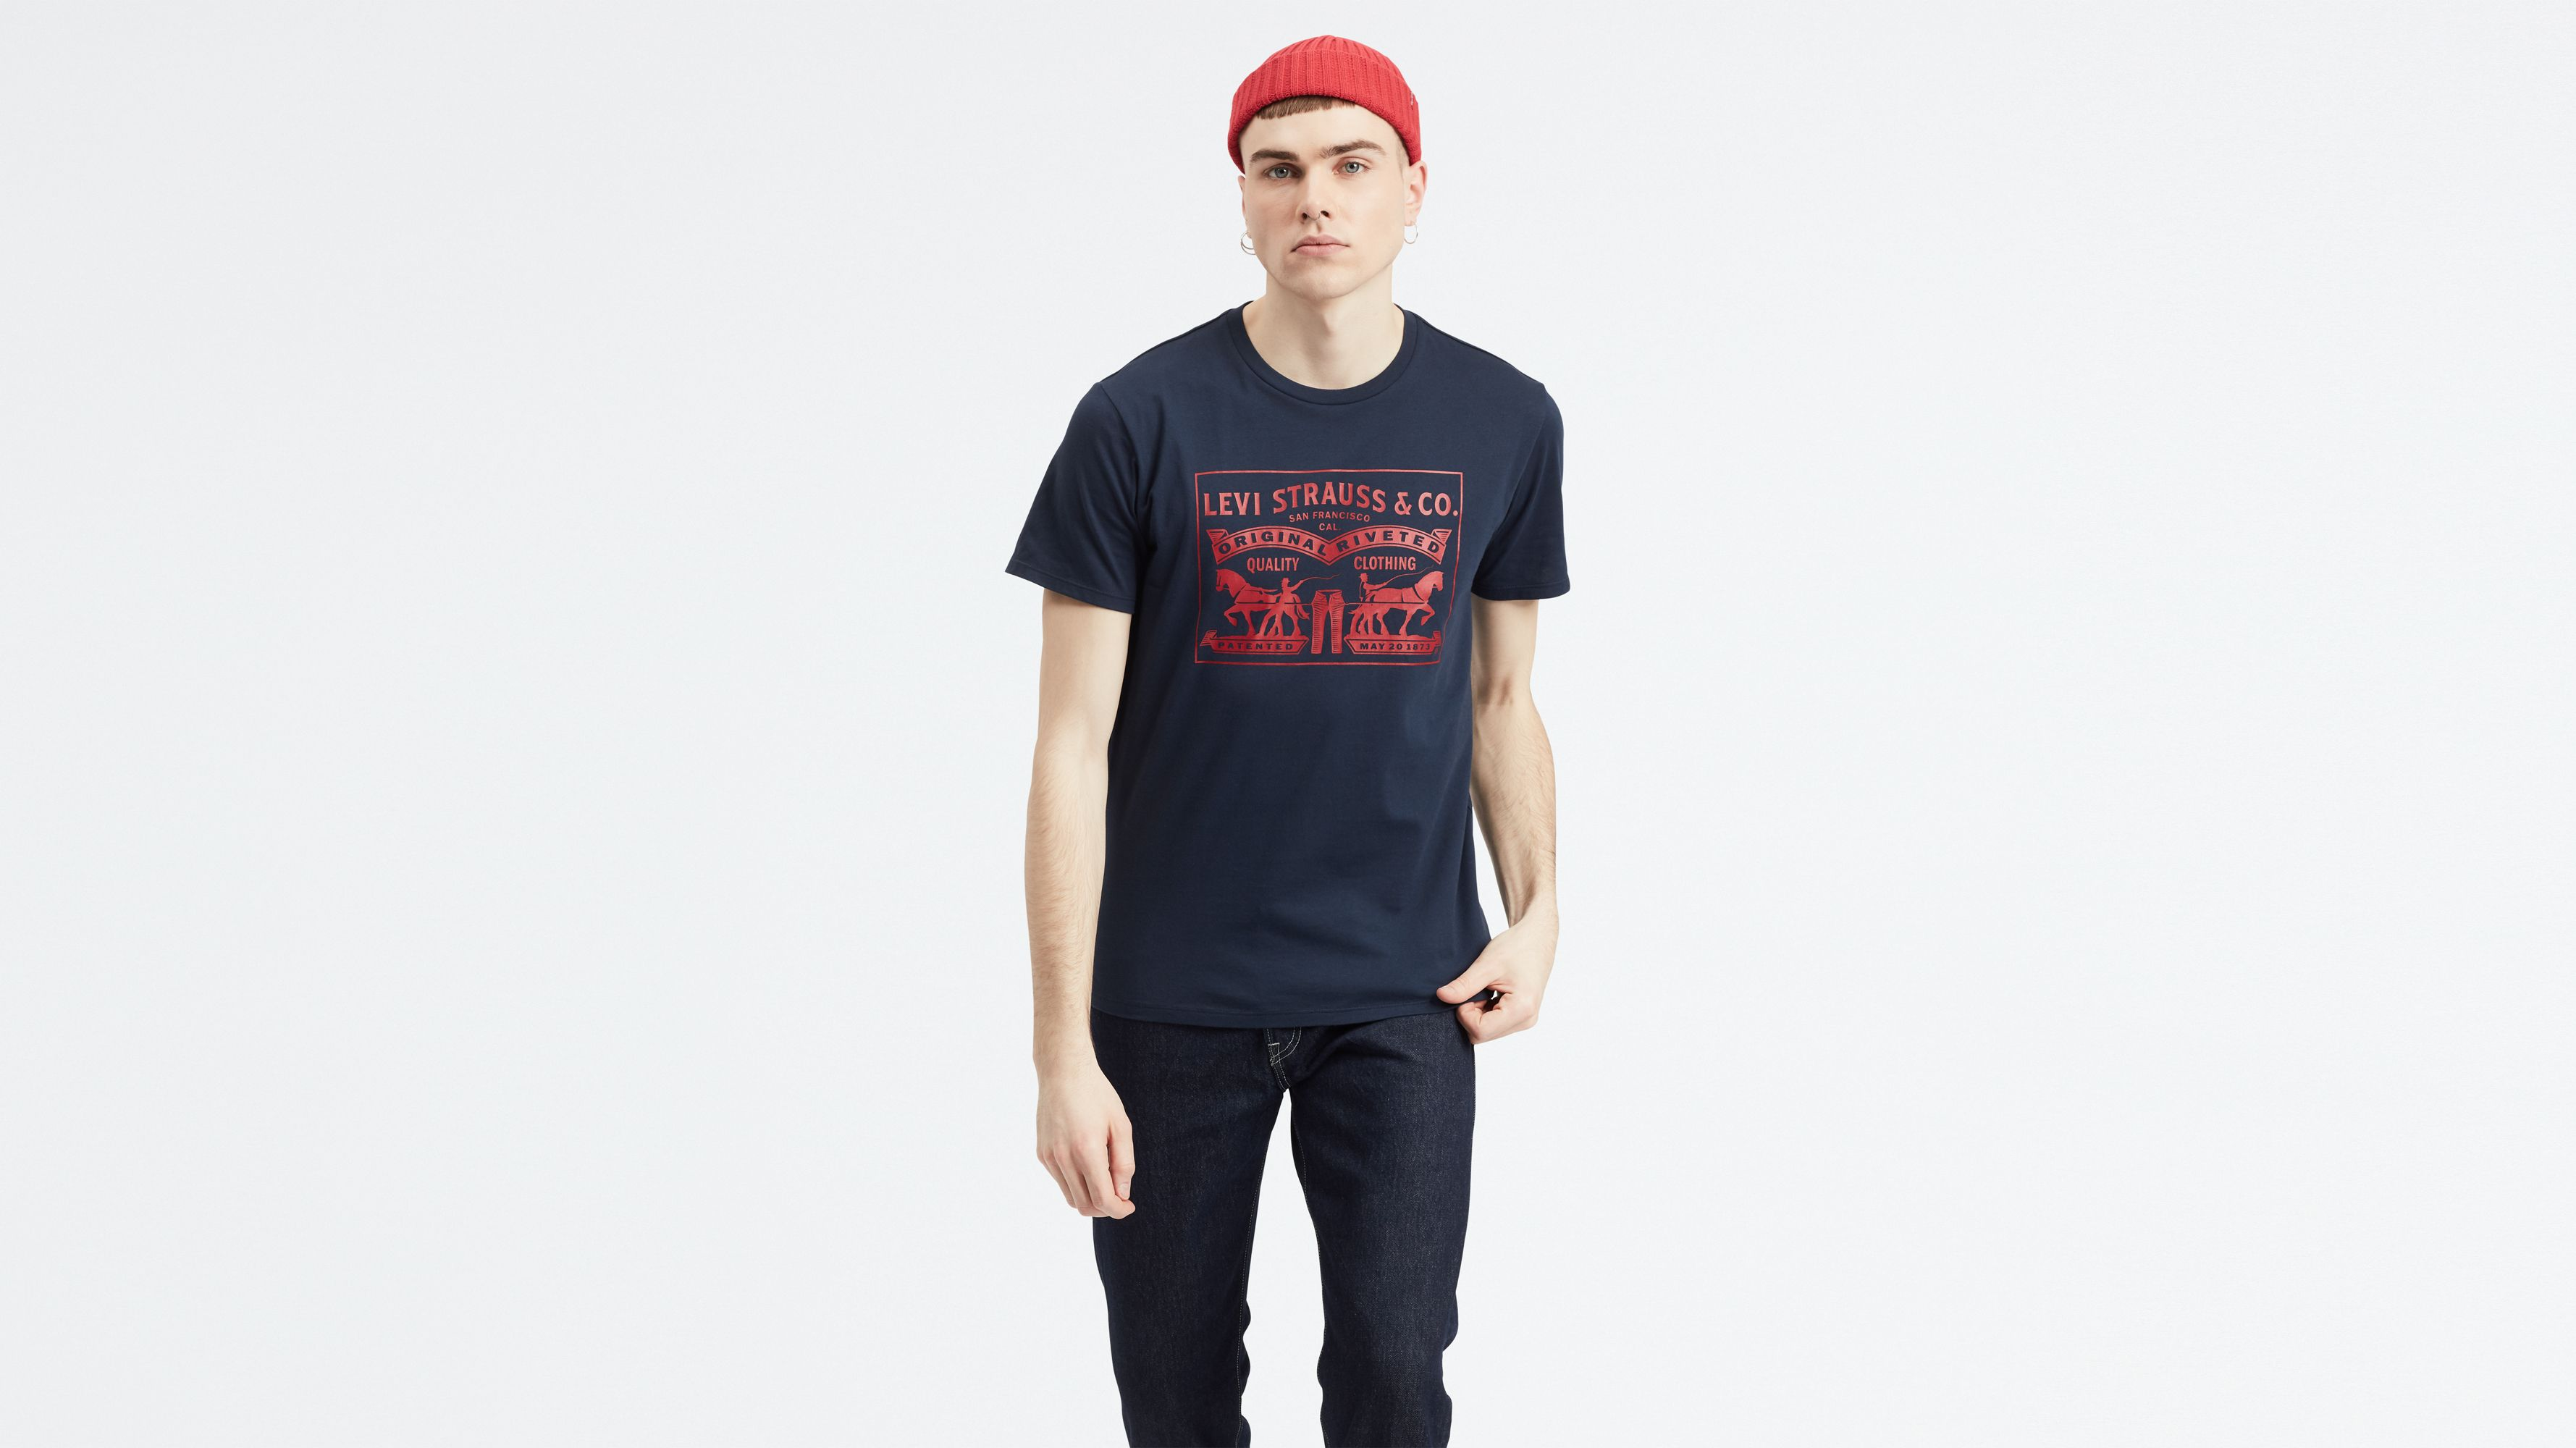 Levis Two-horse Pull Graphic Tee Shirt